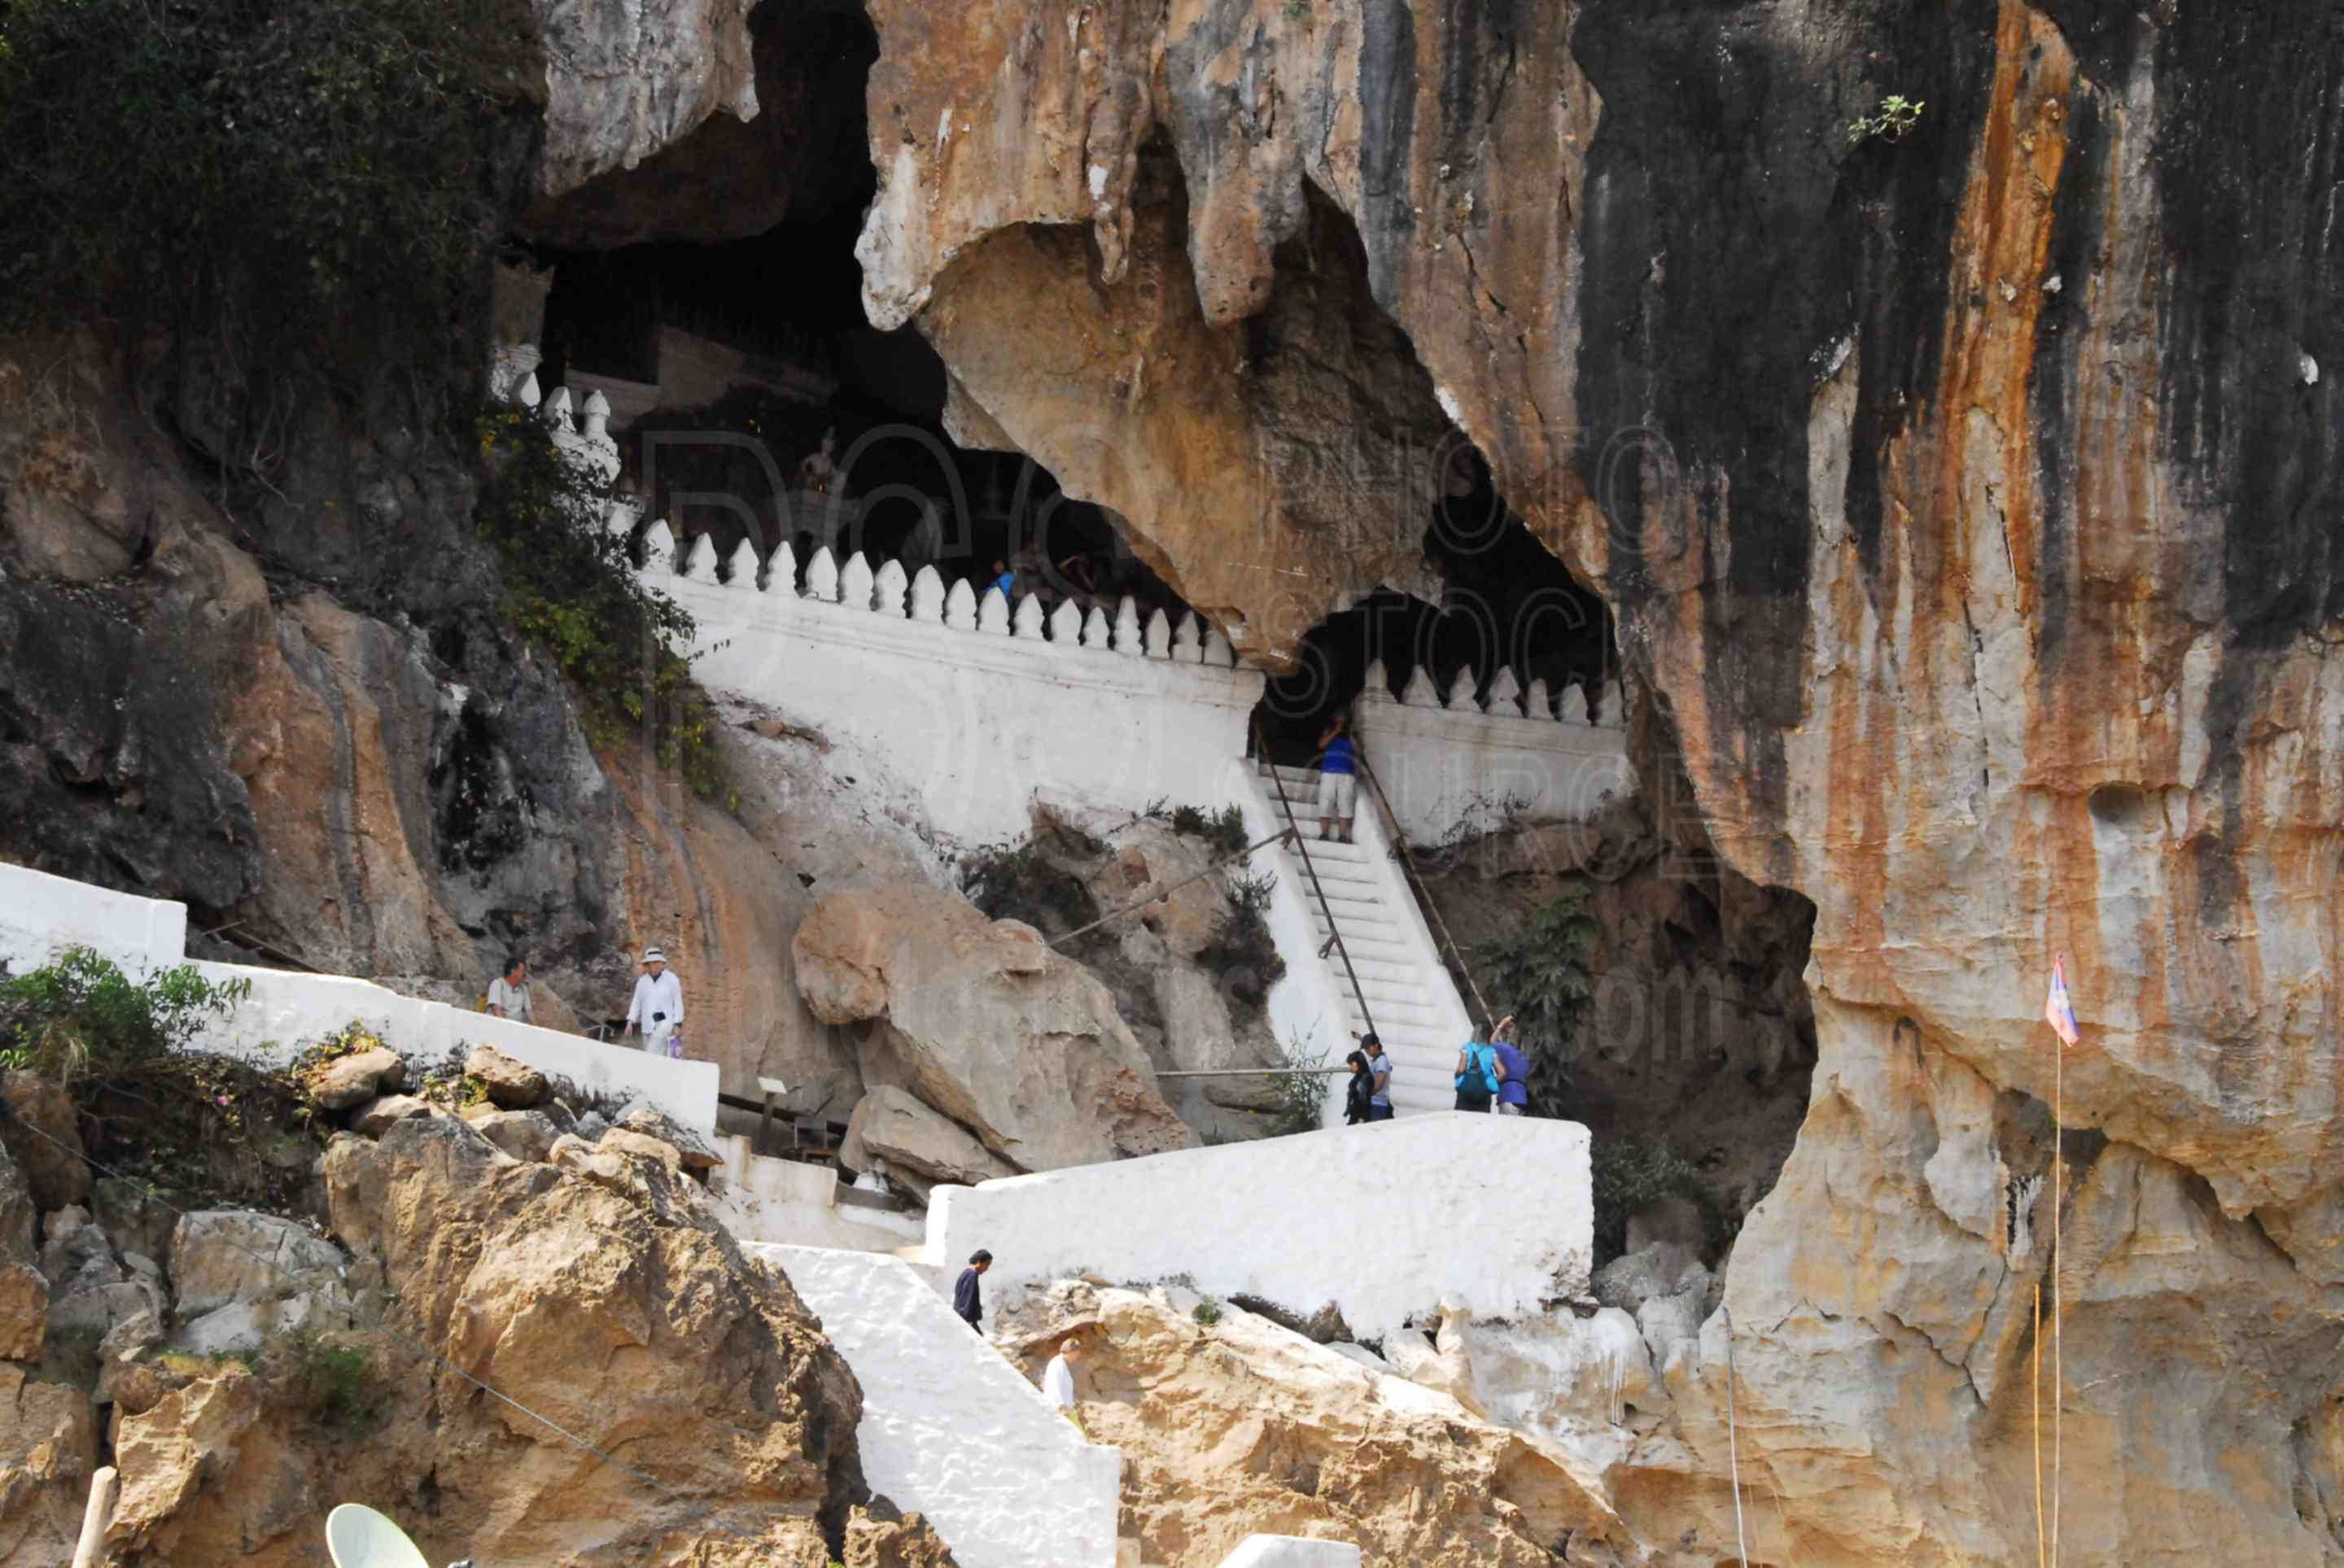 Pak Ou Caves Staircase,boat,transportation,transport,mekong,mekong river,river,cave,shrine,buddha,figures,statues,temple